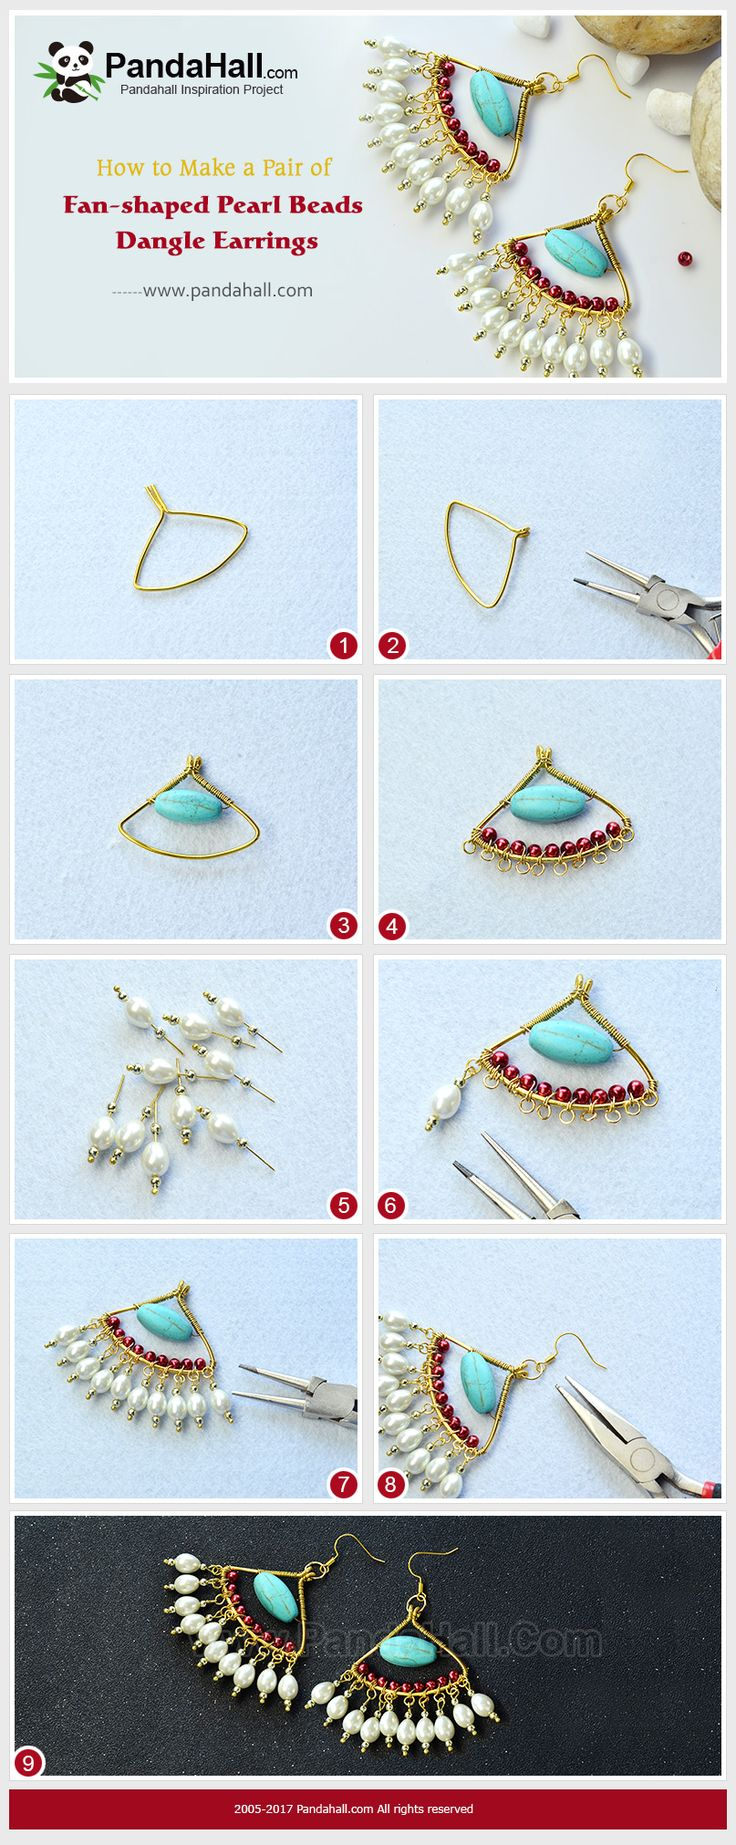 Fan-shaped Pearl Beads Dangle Earrings The main materials of the earrings are turquoise beads, red and white pearl beads and gold acrylic beads. PandaHall Beads APP is on, download here>>>goo.gl/jLxpjp 2018 New Year Sale: UP TO 75% OFF,FREE SHIPPING over $349 from Jan 2-23, Free Coupons: PHENPIN5 (Save $5 for $70+) PHENPIN7(Save $7 for $100+) #PandaHall #earringstutorial #craft #diyearrings #jewelrymaking #pearl #turquoise #fanshape dangle